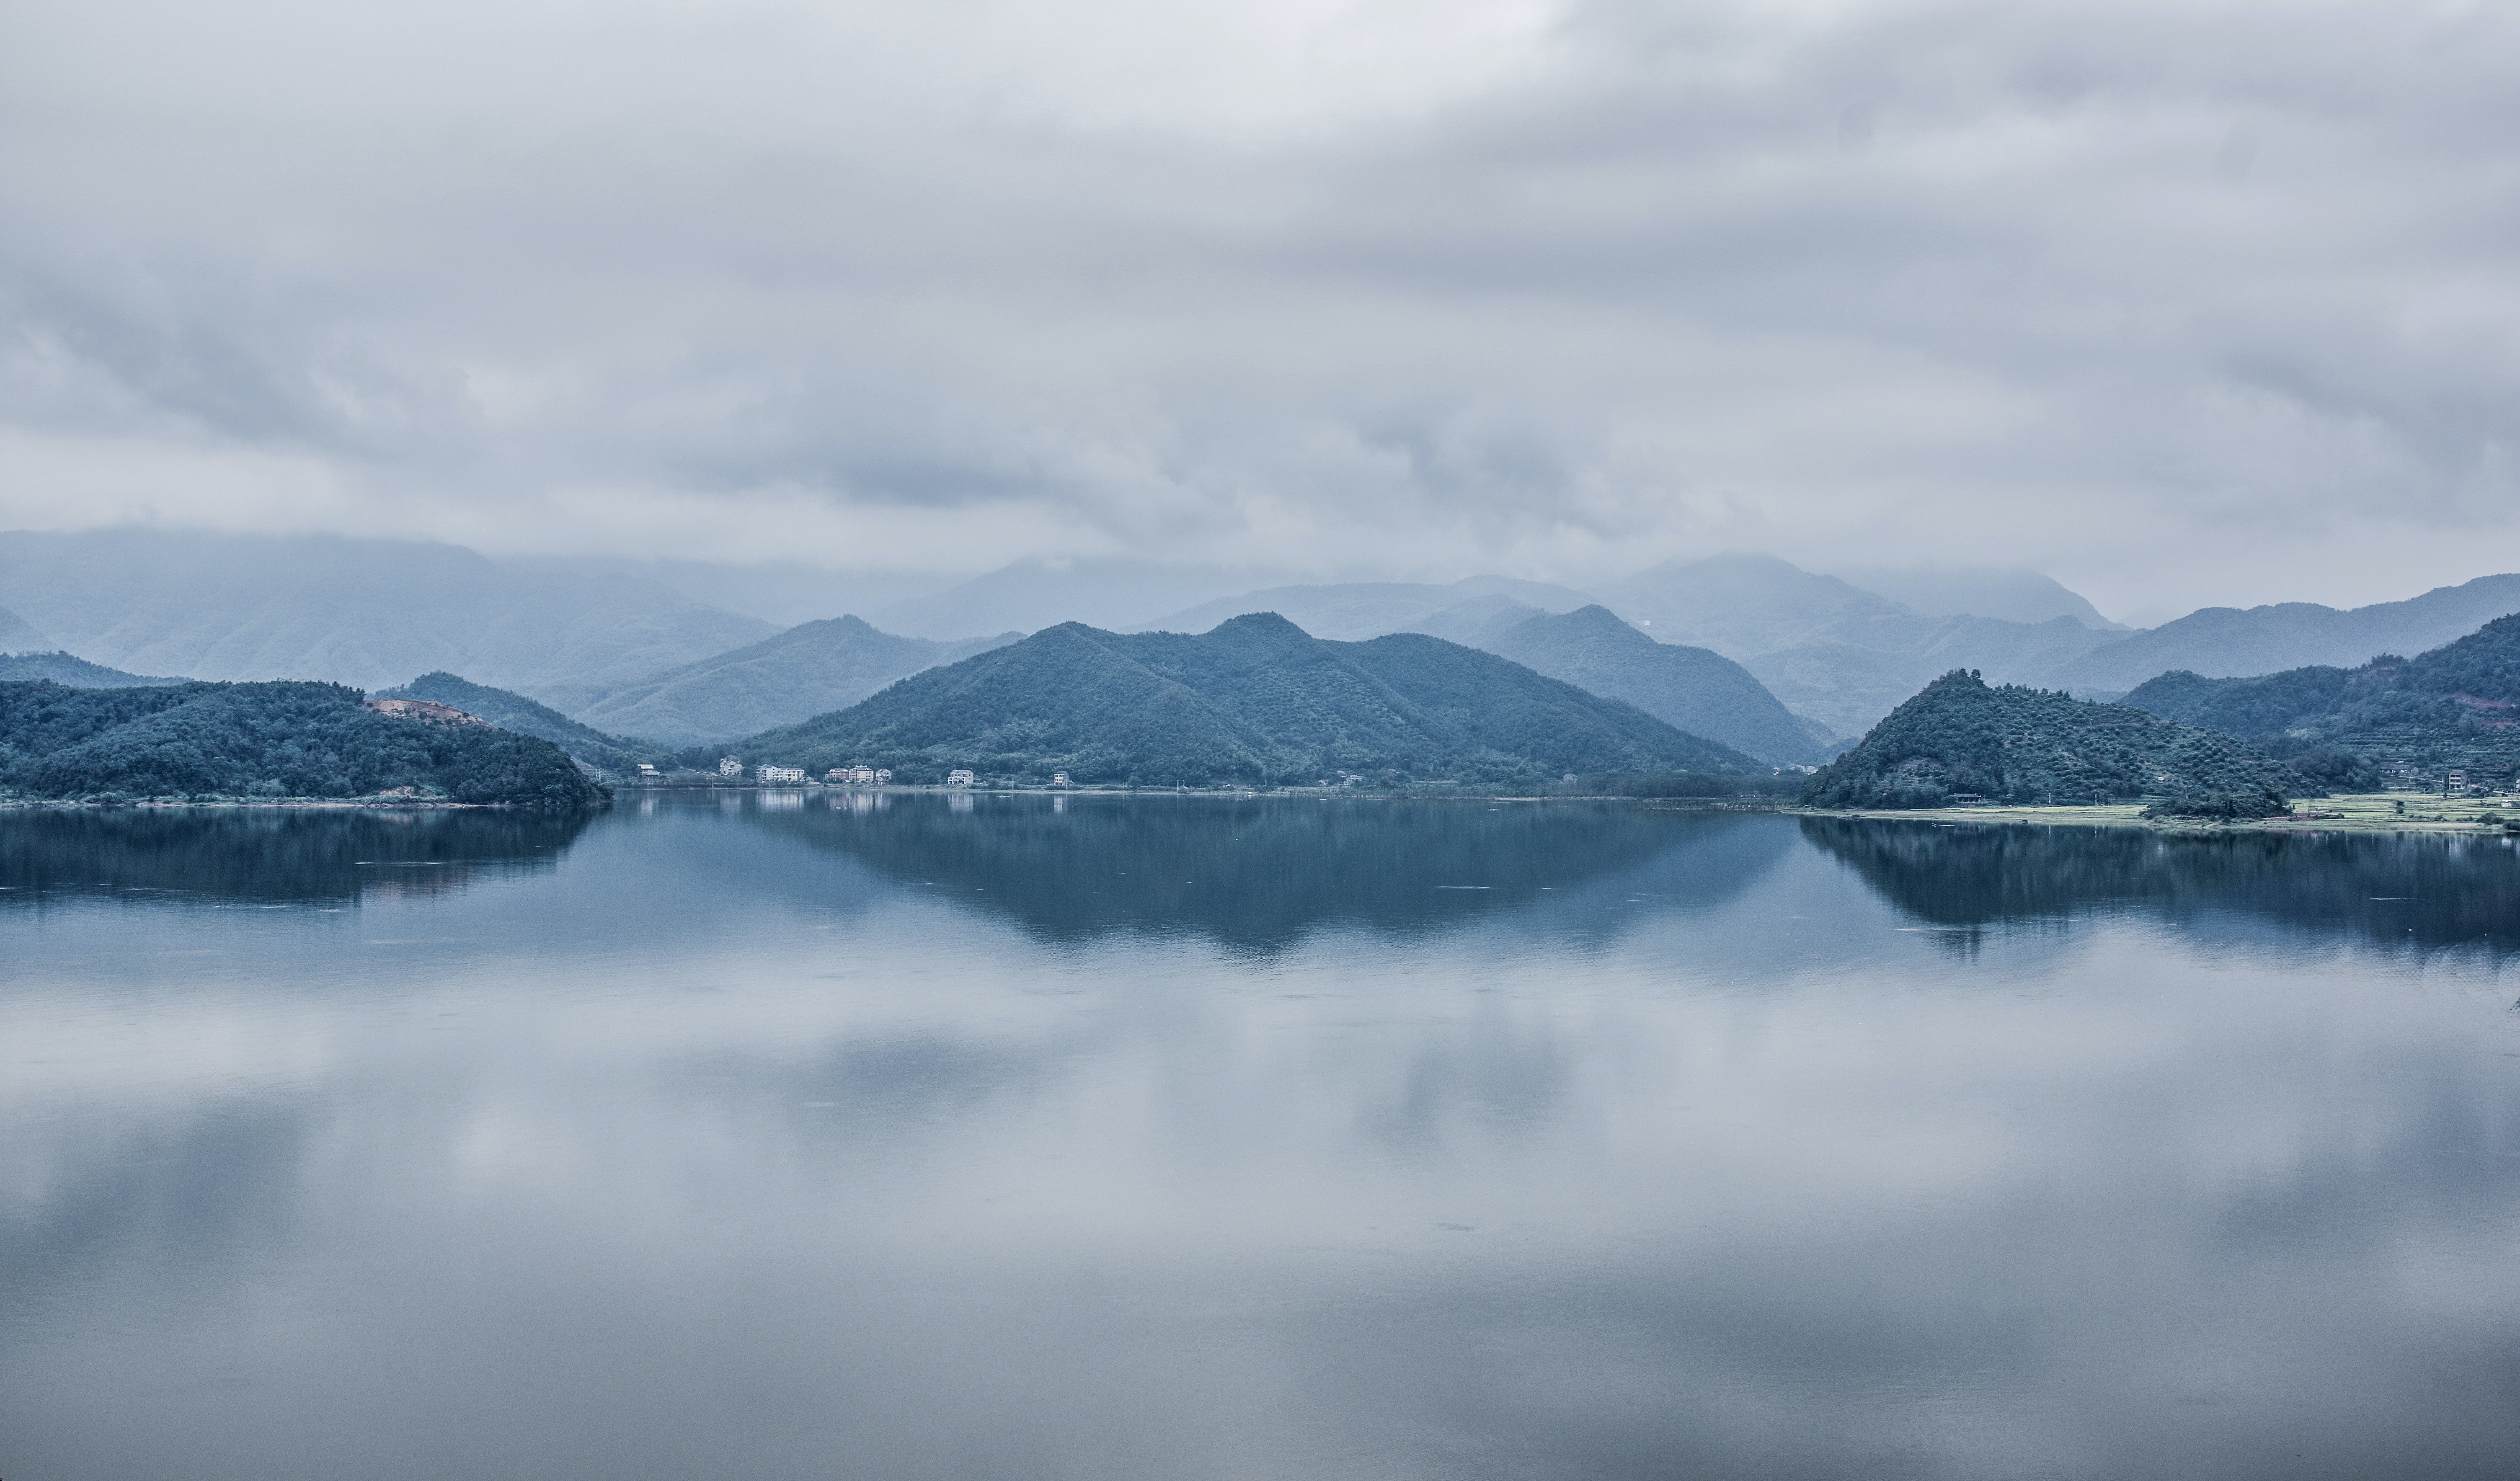 View from a calm lake on its hilly shores